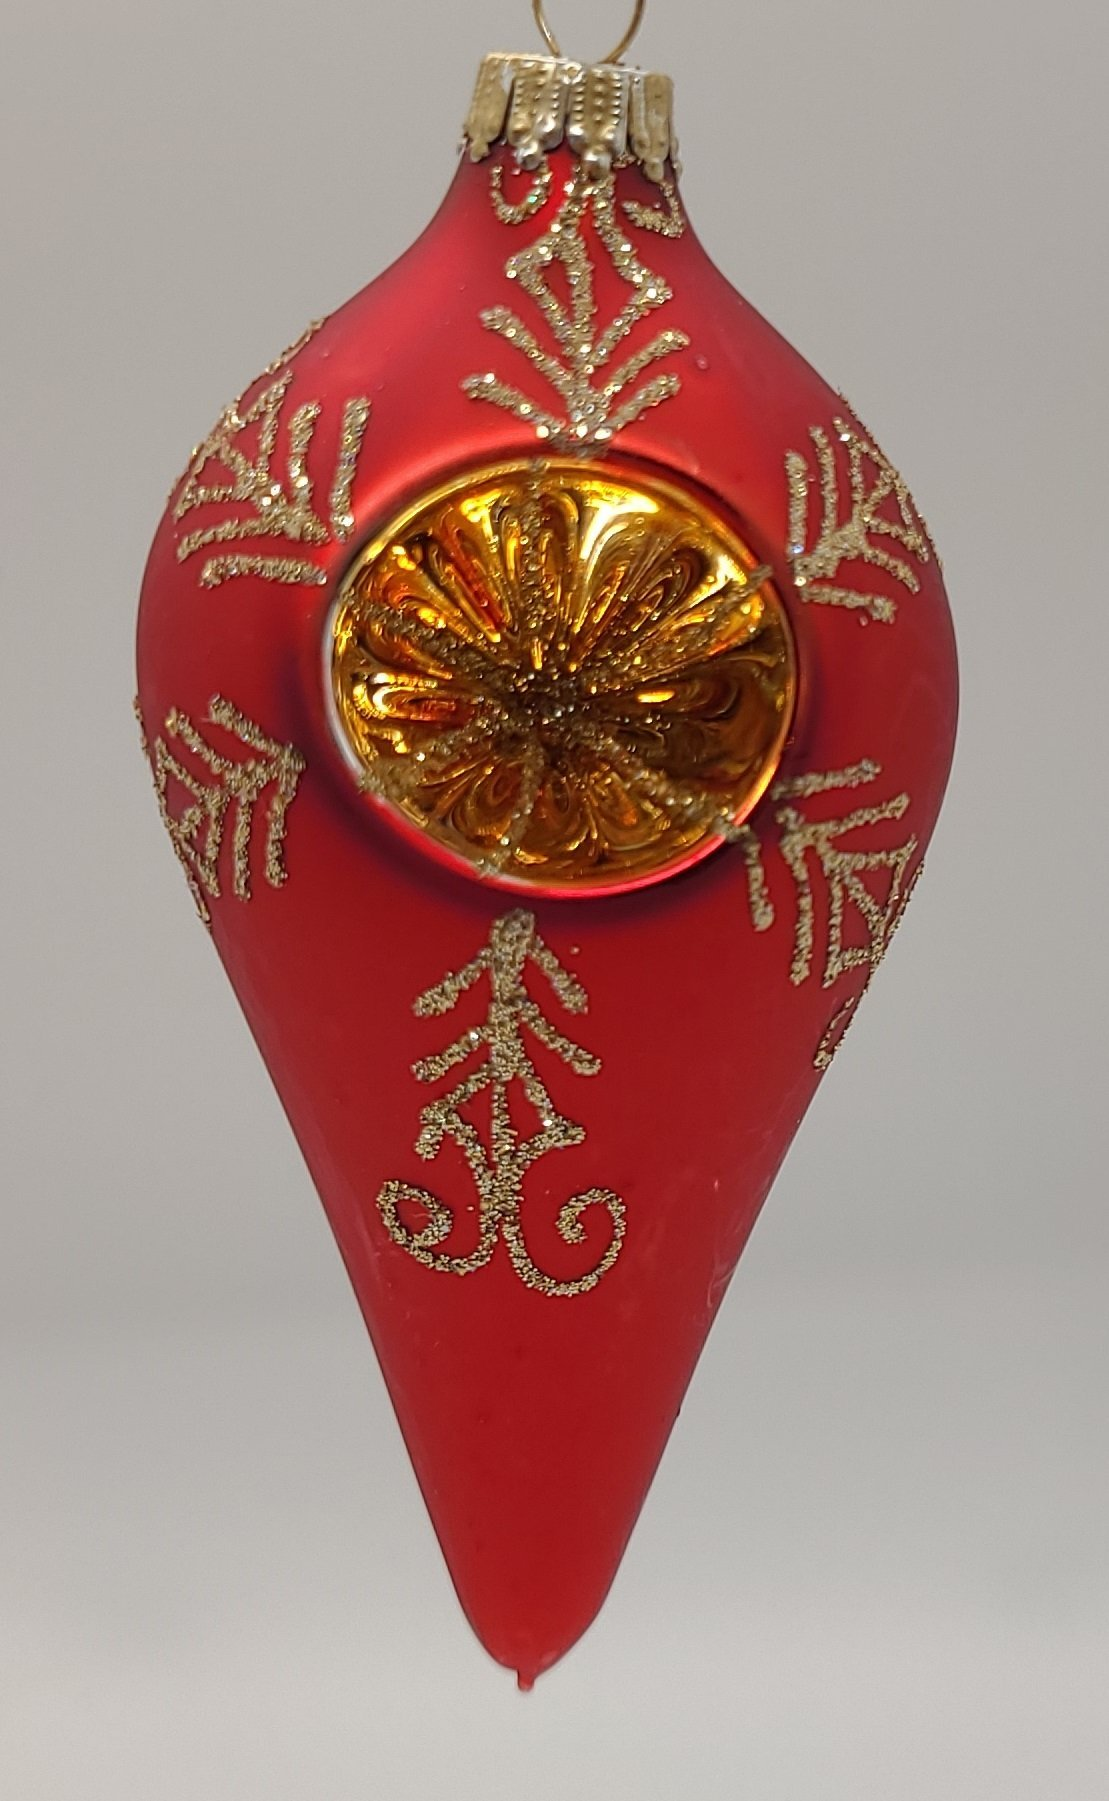 "Dark Red Vvett 4 ""Drop Shape na may Gold Reflector at Gold Crown Cap Ornament - Schmidt Christmas Market Christmas Decoration"